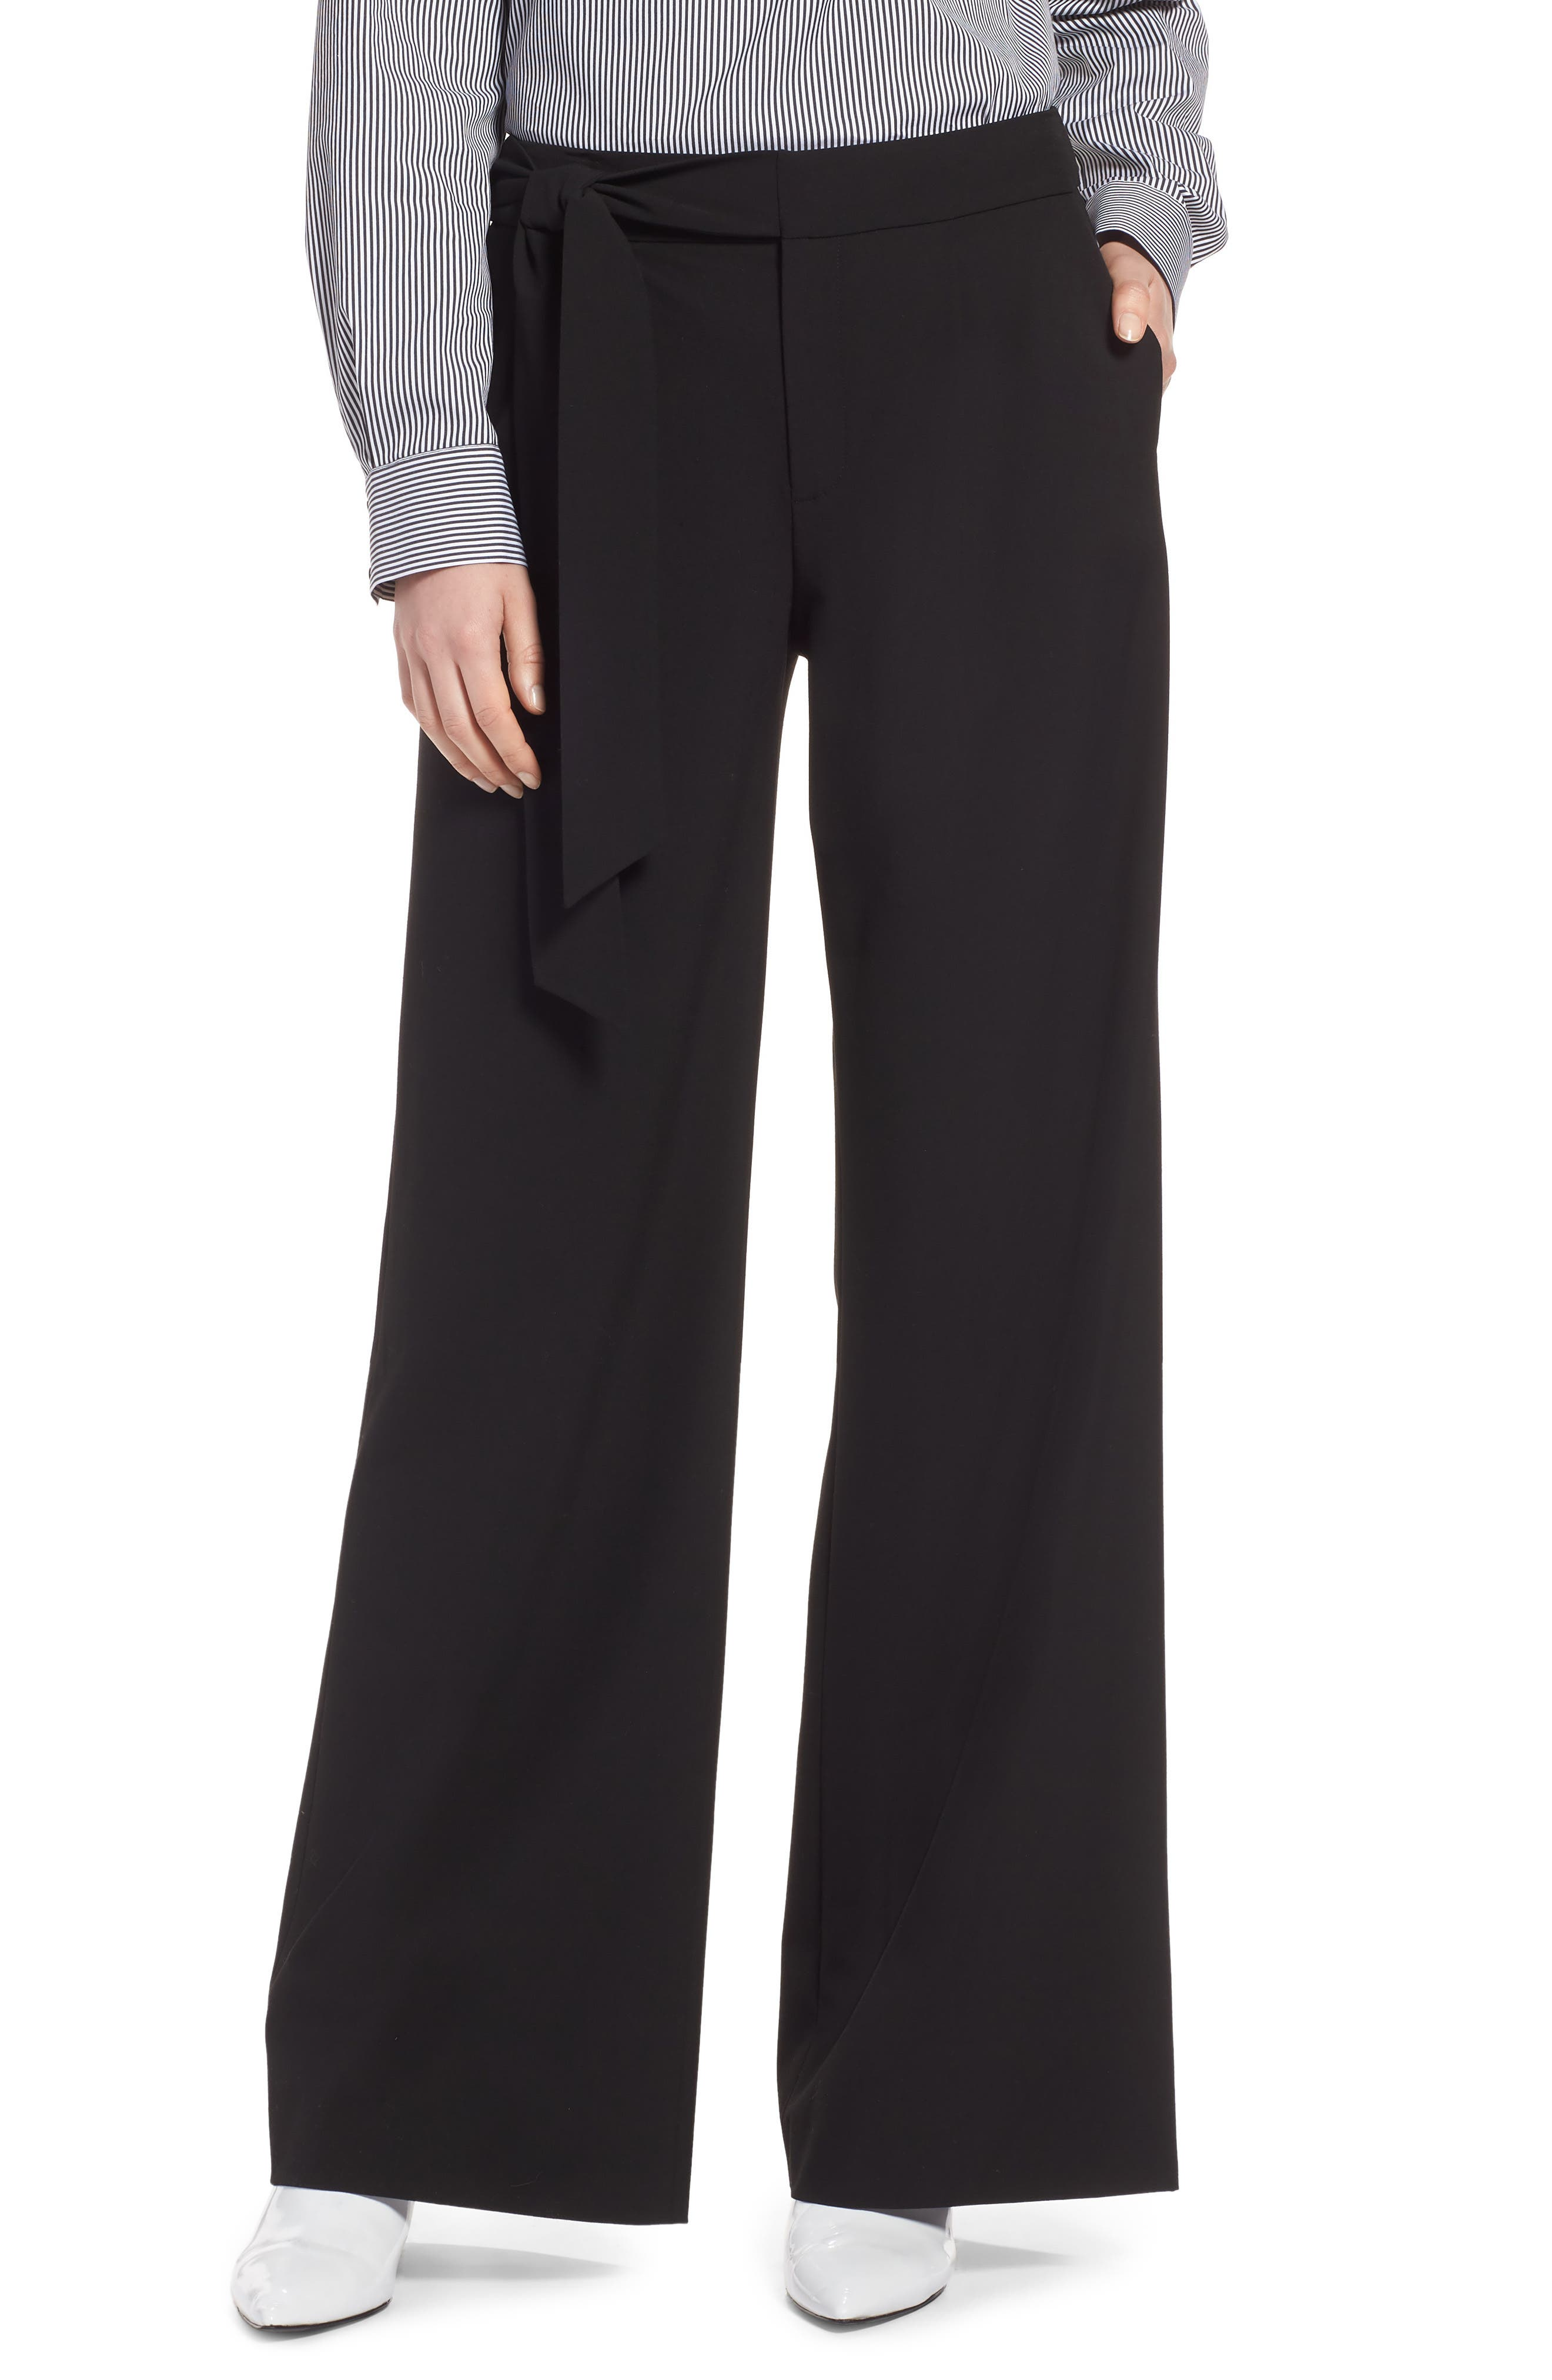 Tie Waist Wide Leg Stretch Crepe Pants $53.4 (Nordstrom)